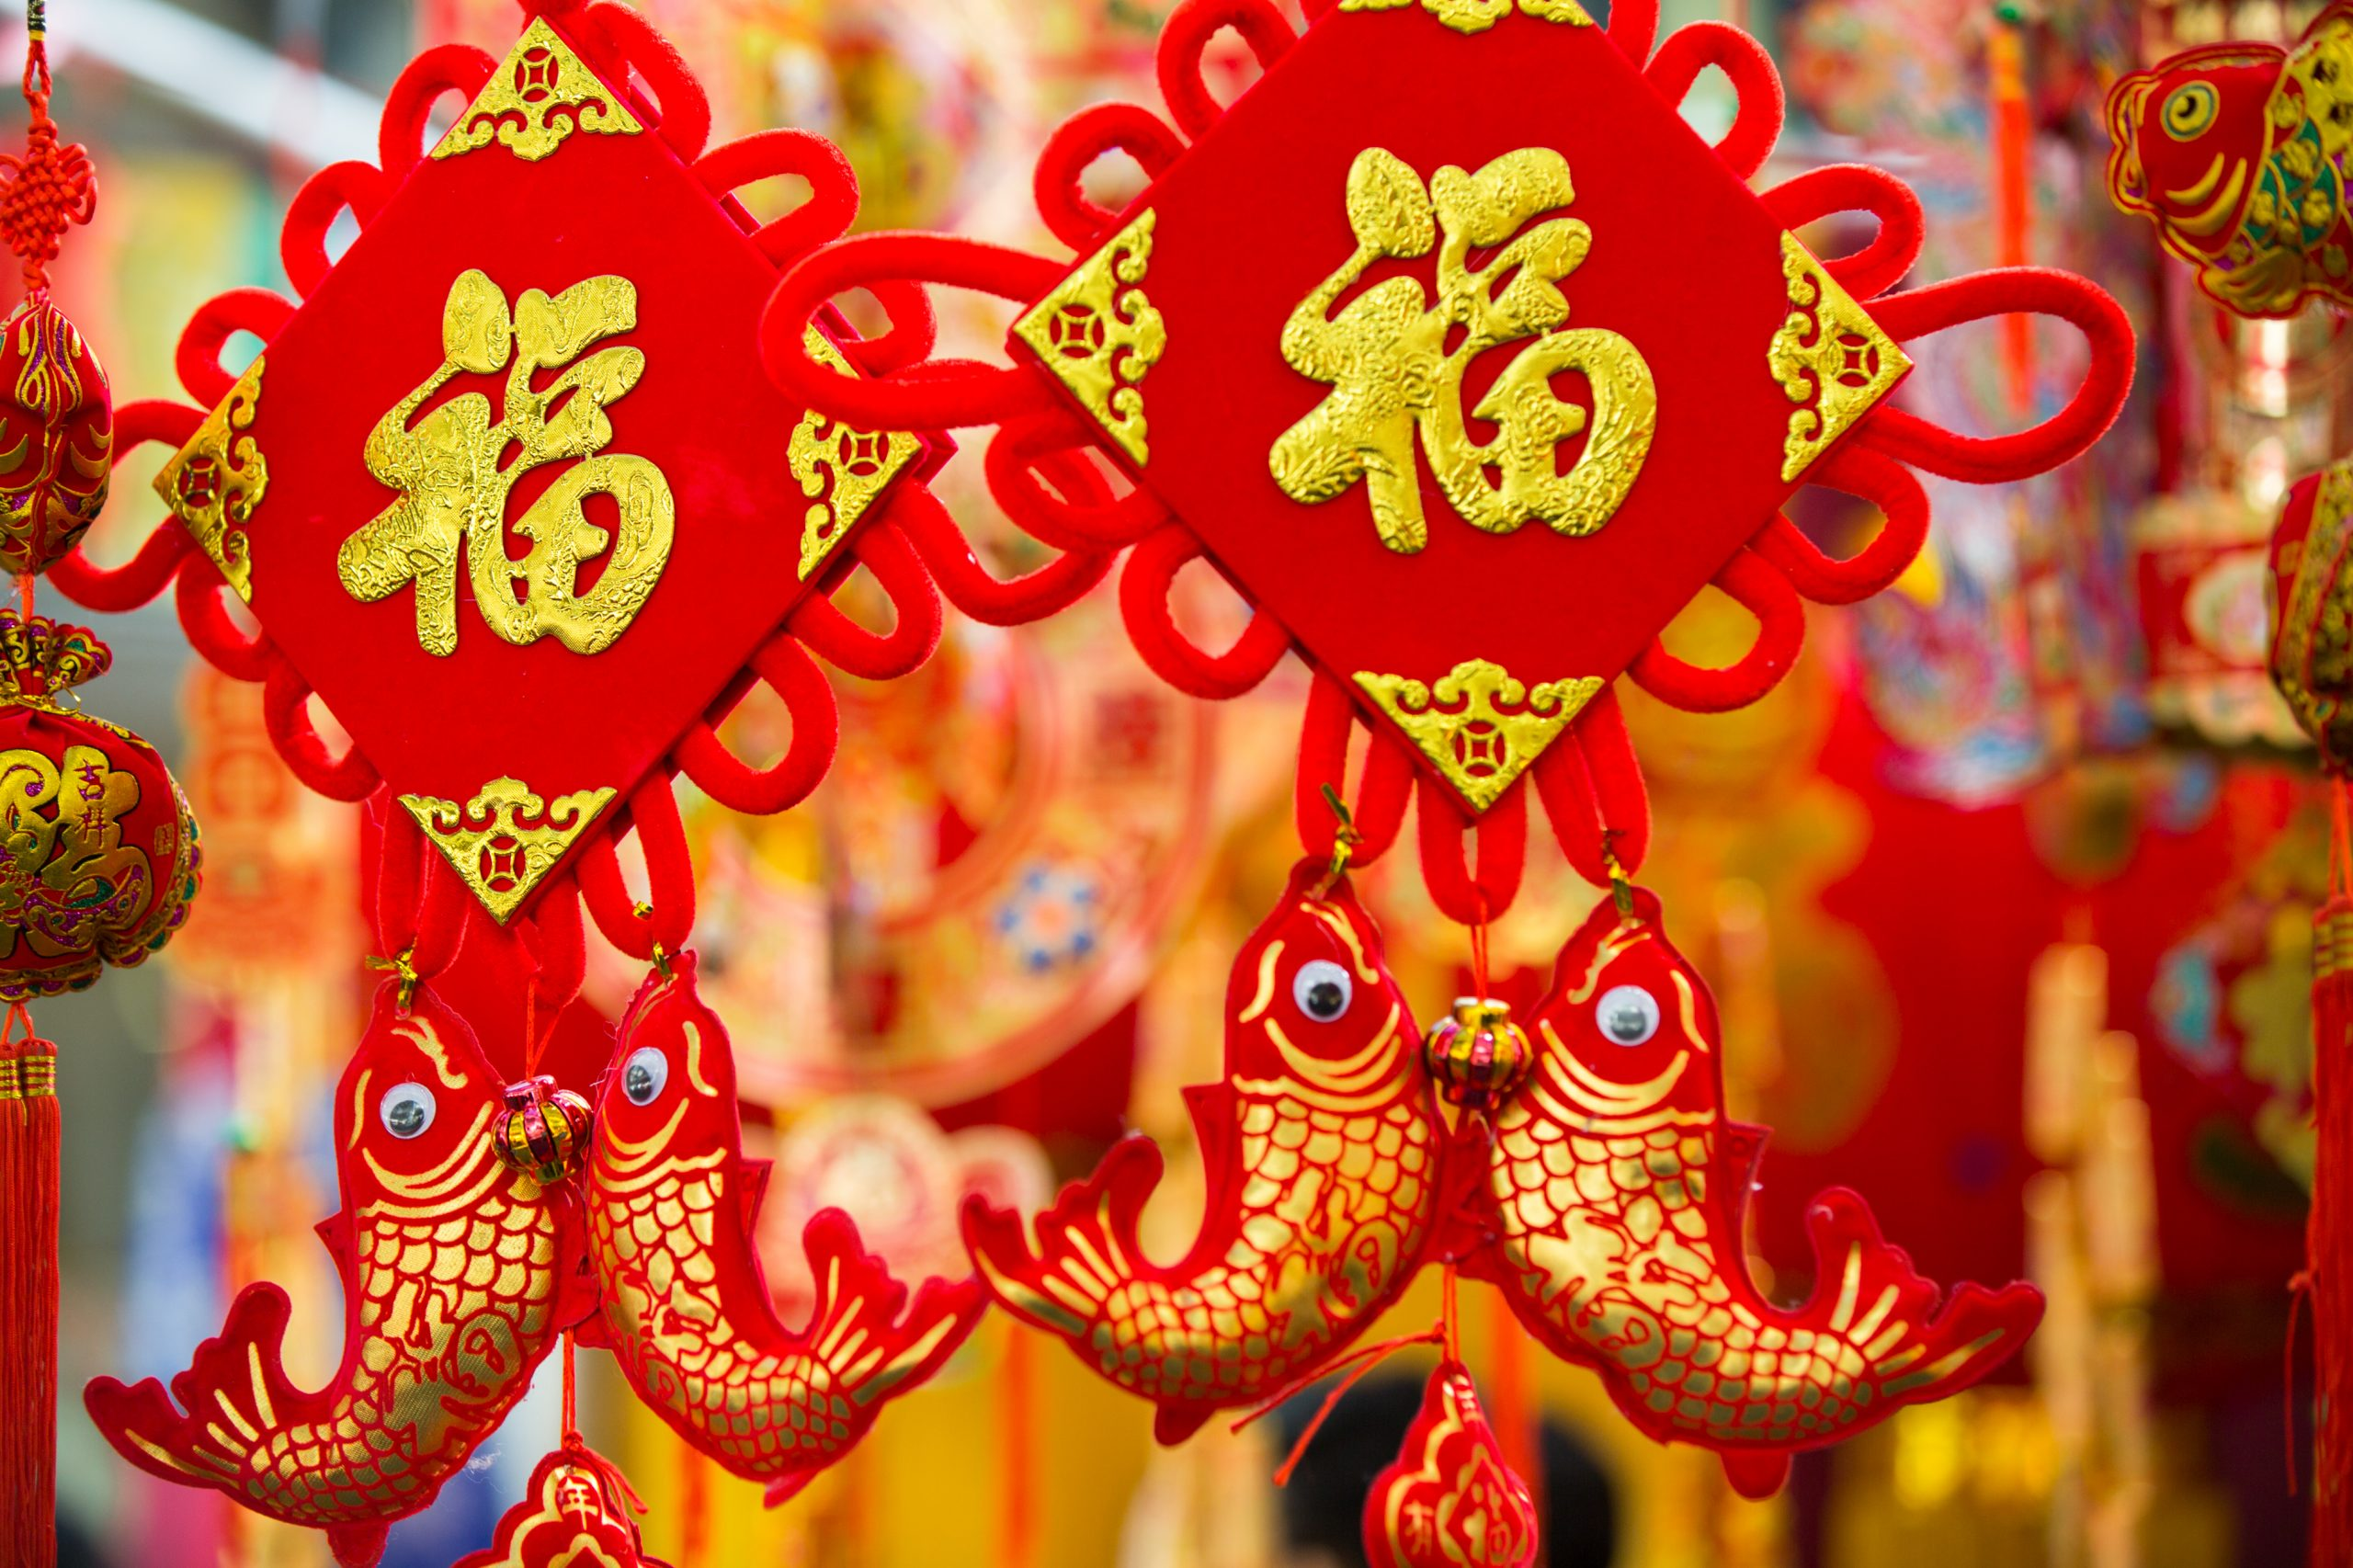 The Chinese New Year begins: are you ready for the year of savings?